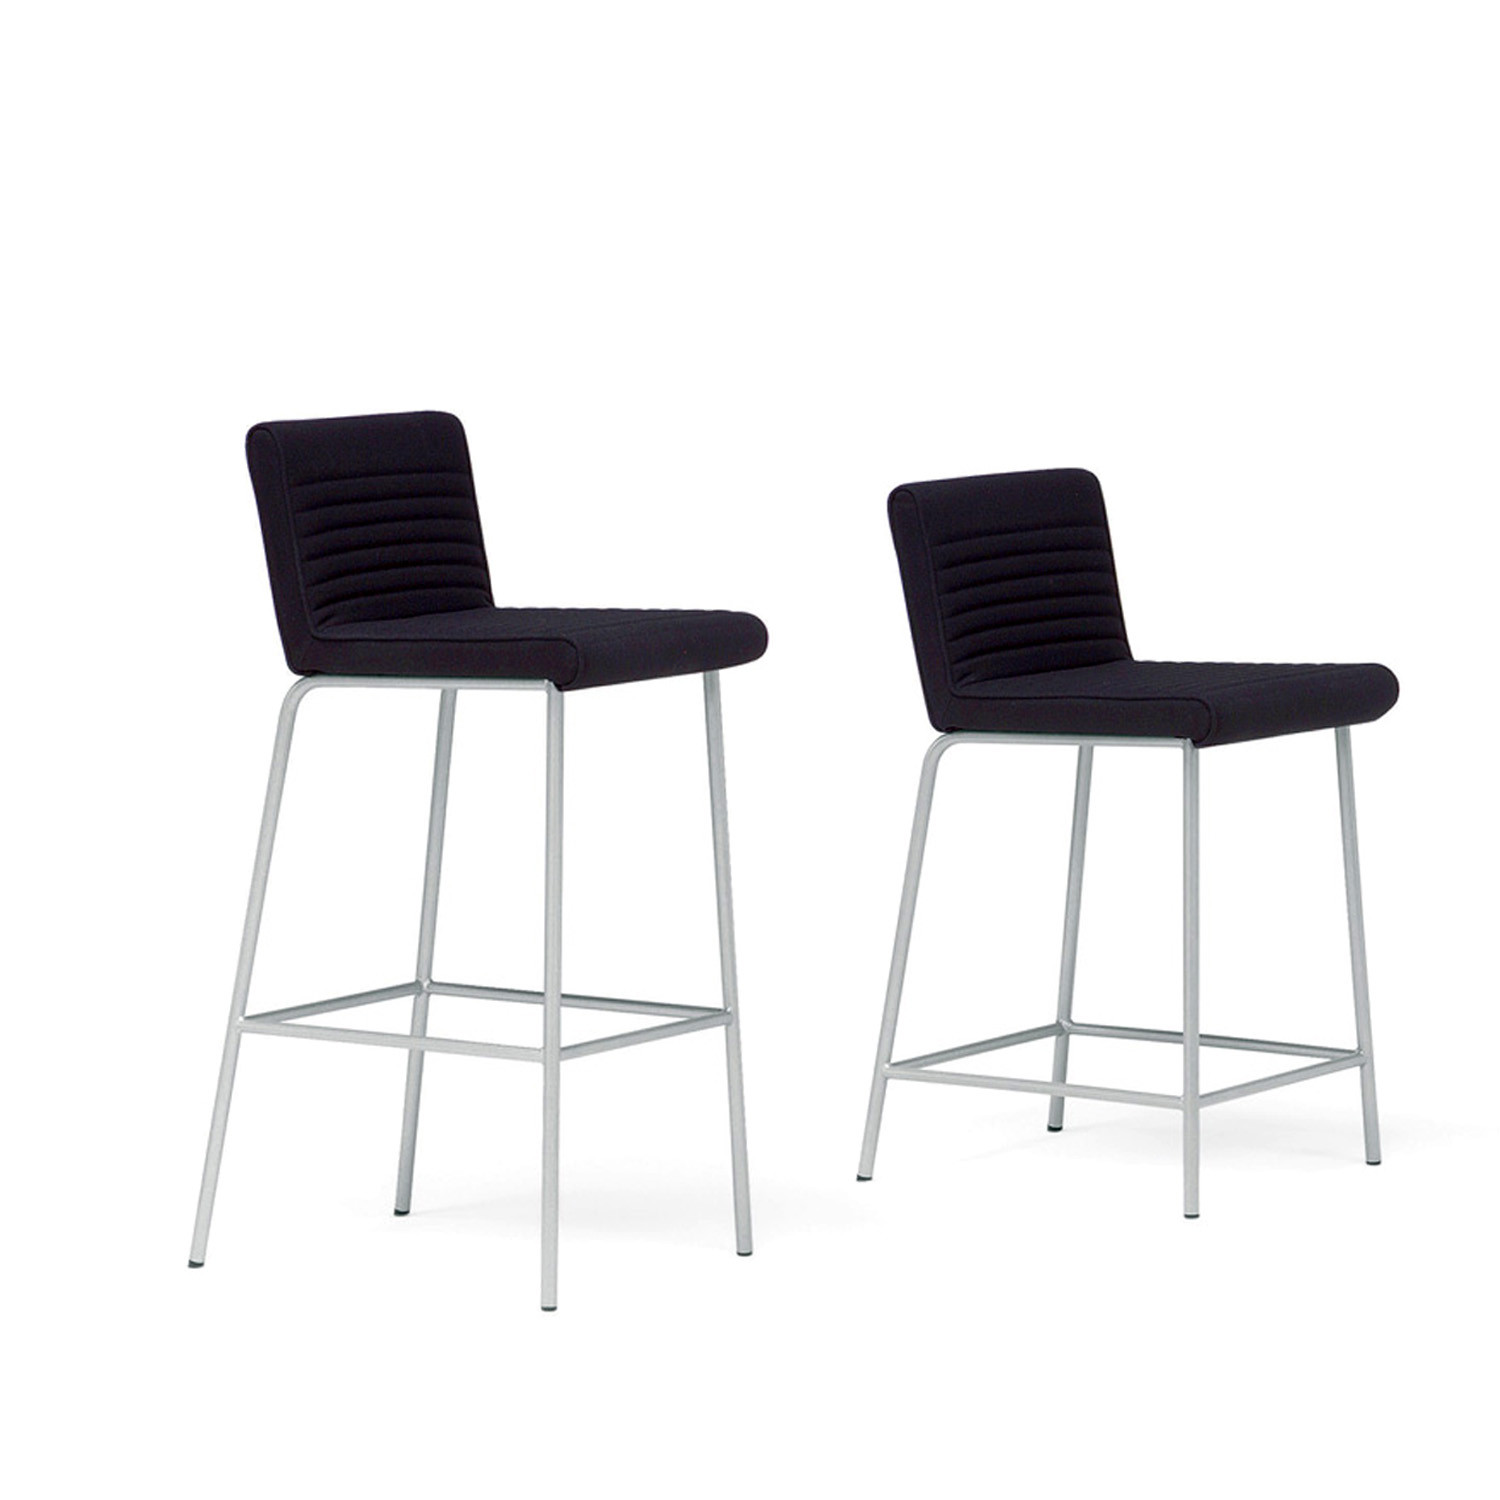 Qool Barstool & Stool by Offecct